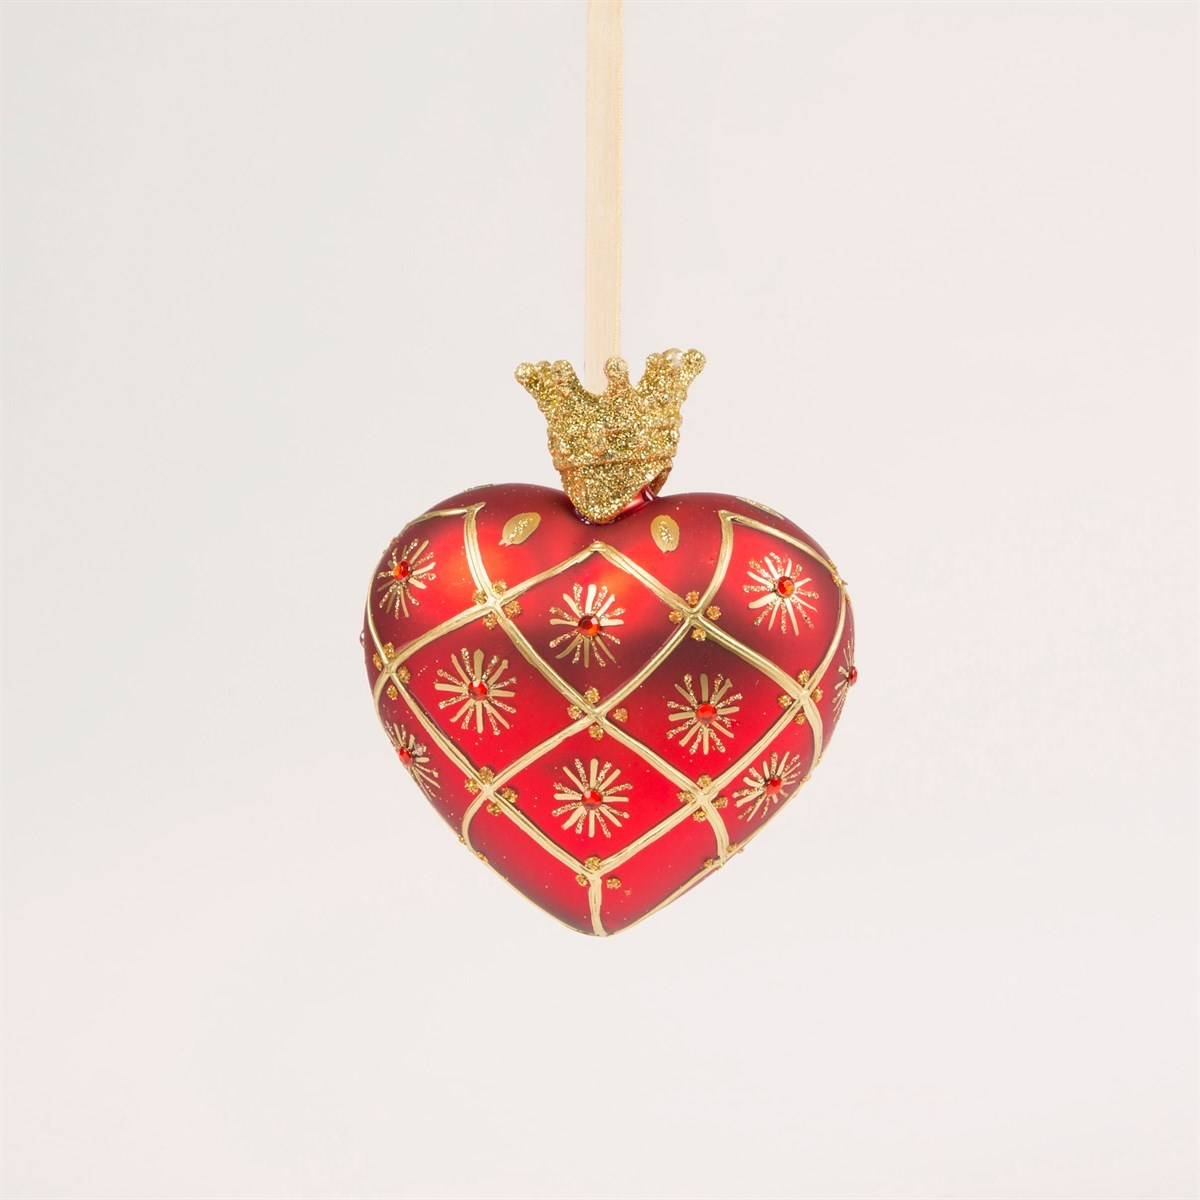 Sass /& Belle SET OF 4 RED /& GOLD HEIRLOOM OVAL BAUBLES Christmas Decorations